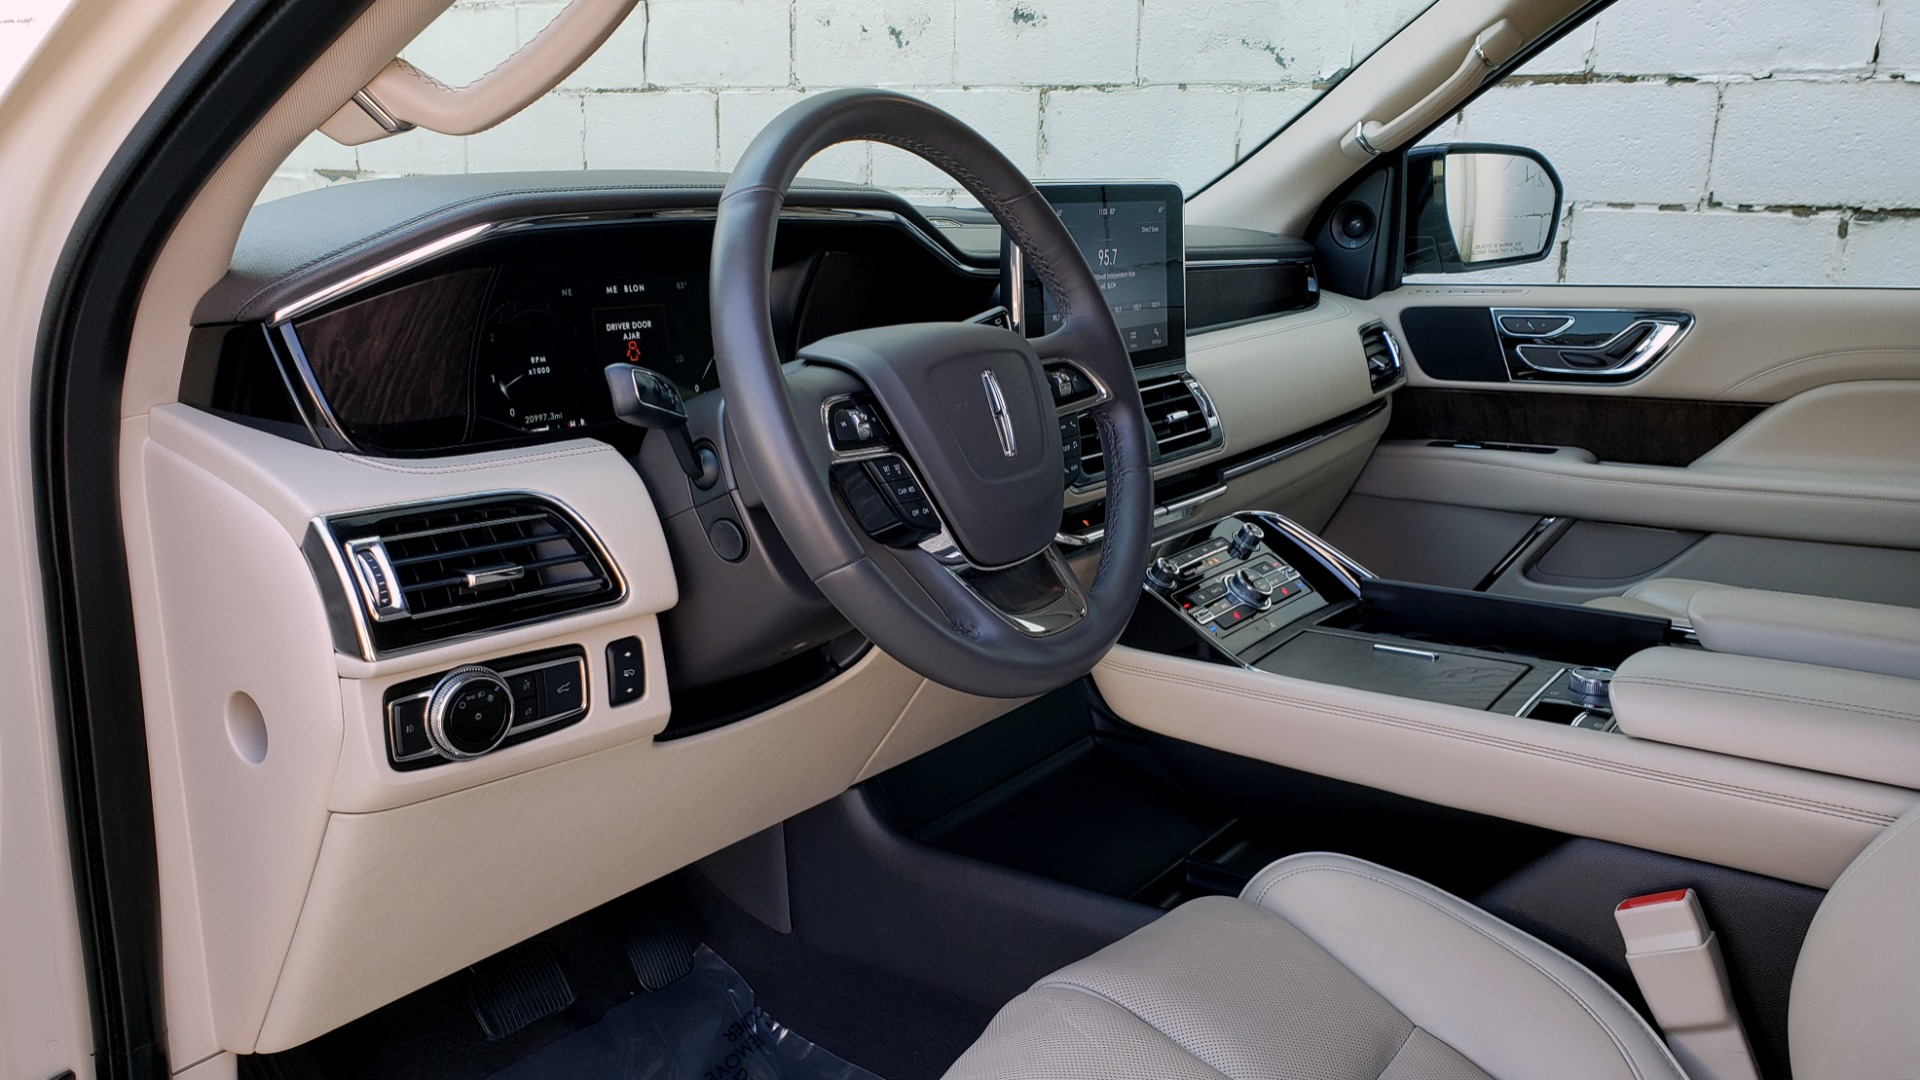 Used 2018 Lincoln NAVIGATOR PREMIERE 4X2 / TWIN-TURBO V6 / NAV / 3-ROW / REARVIEW for sale Sold at Formula Imports in Charlotte NC 28227 43